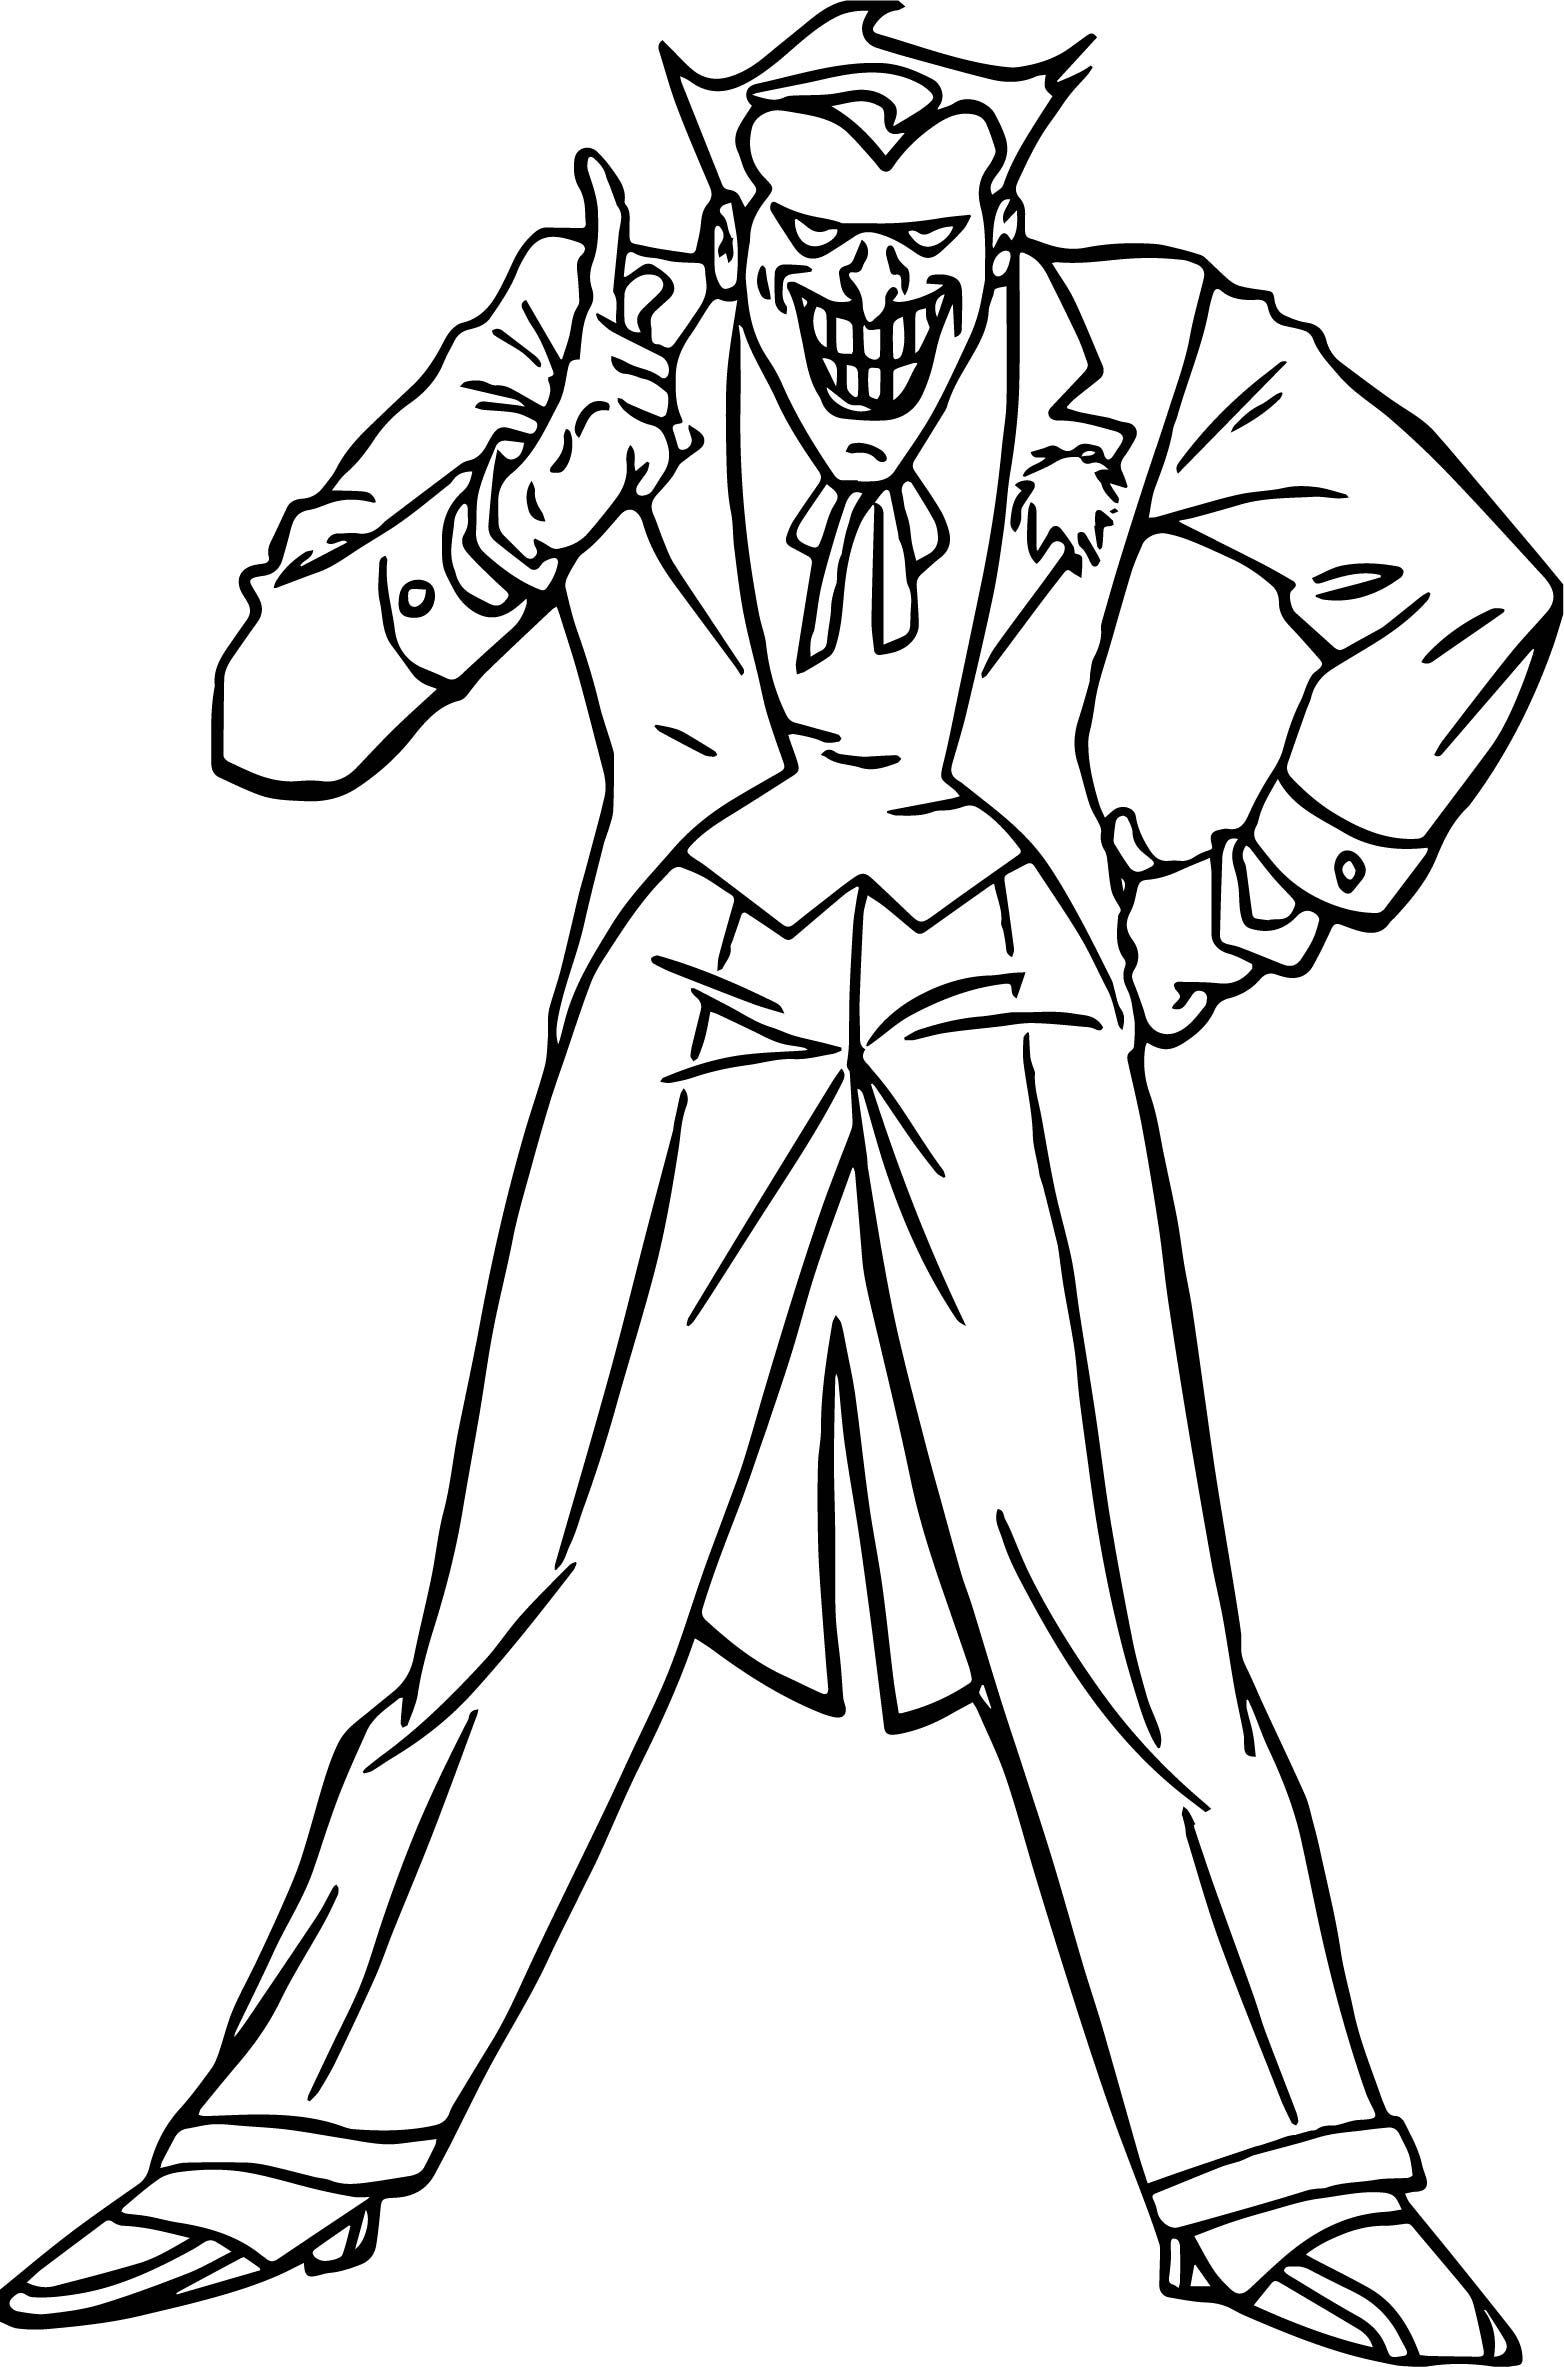 Joker From Batman Coloring Page